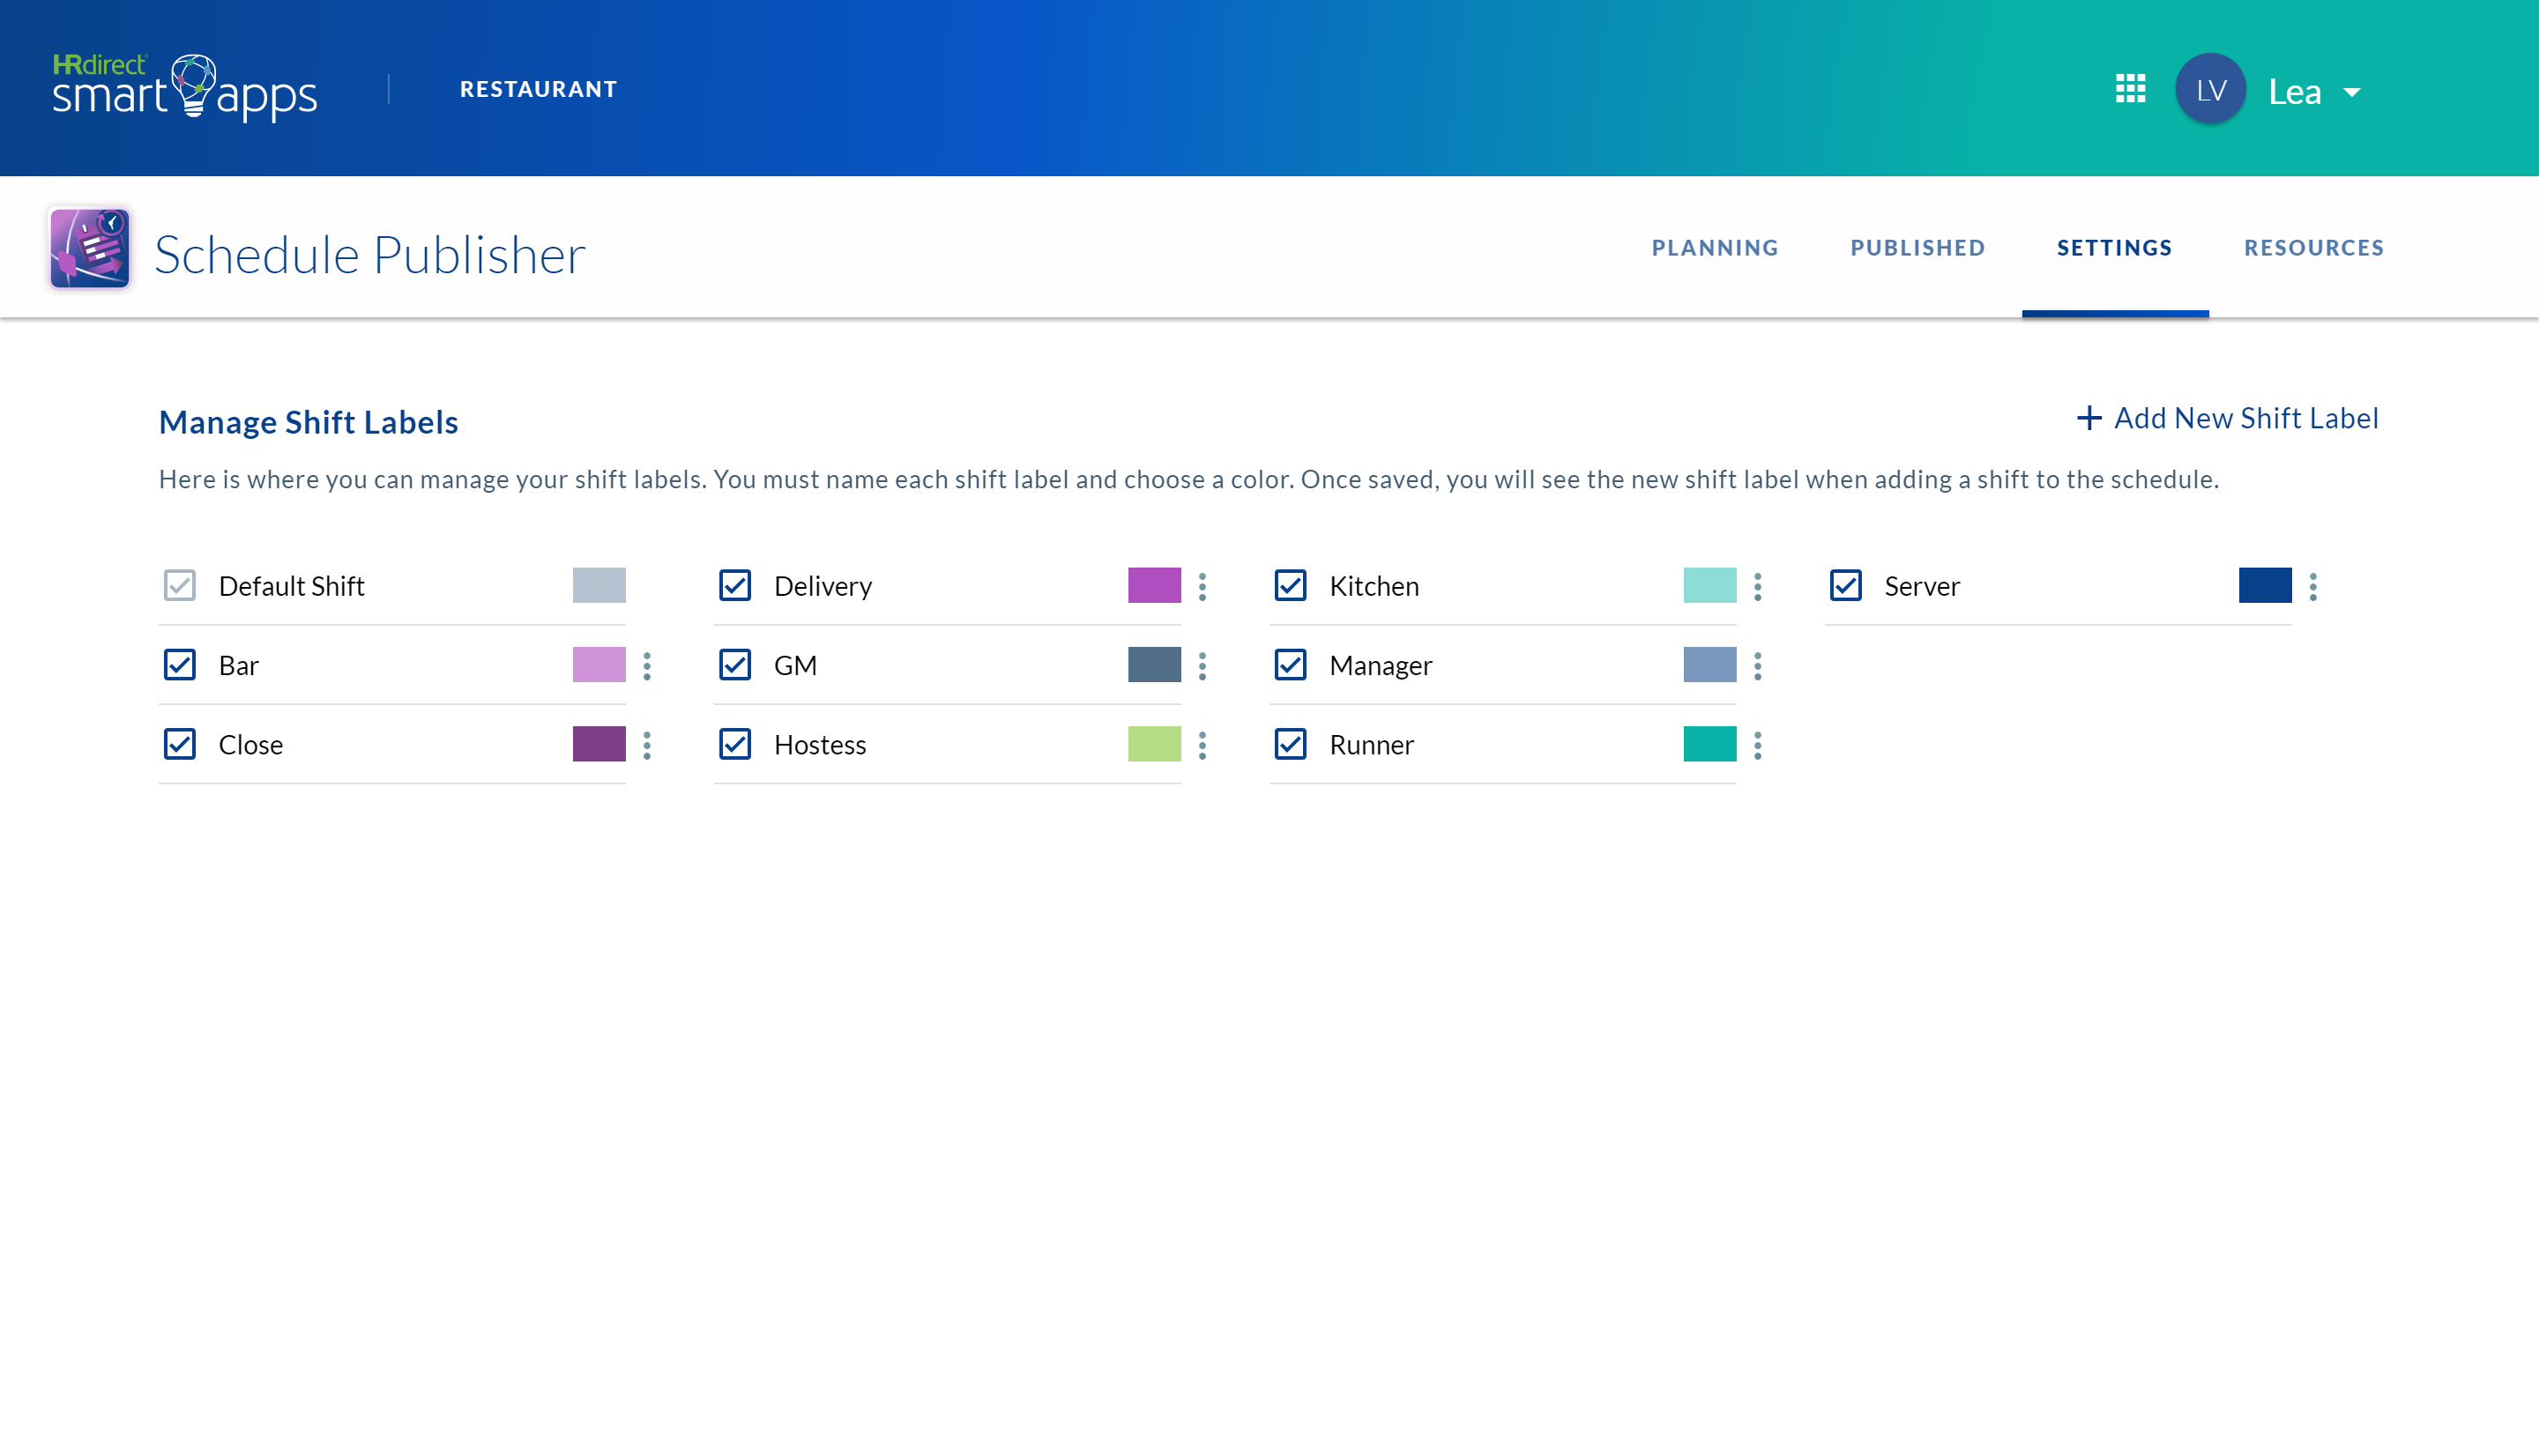 schedule publisher app's setting page where you can manage shift labels and color code them